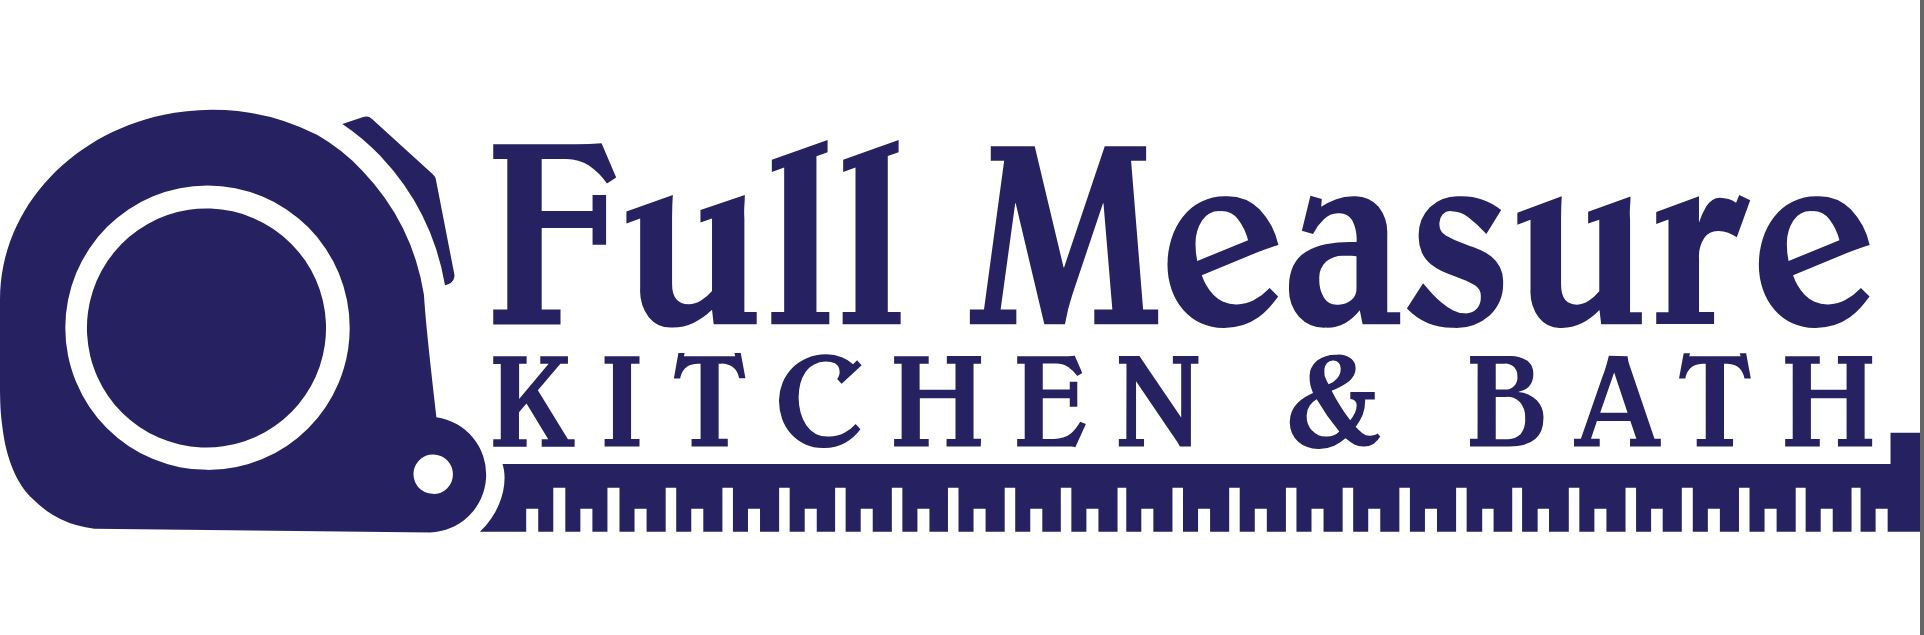 Full Measure Kitchen & Bath